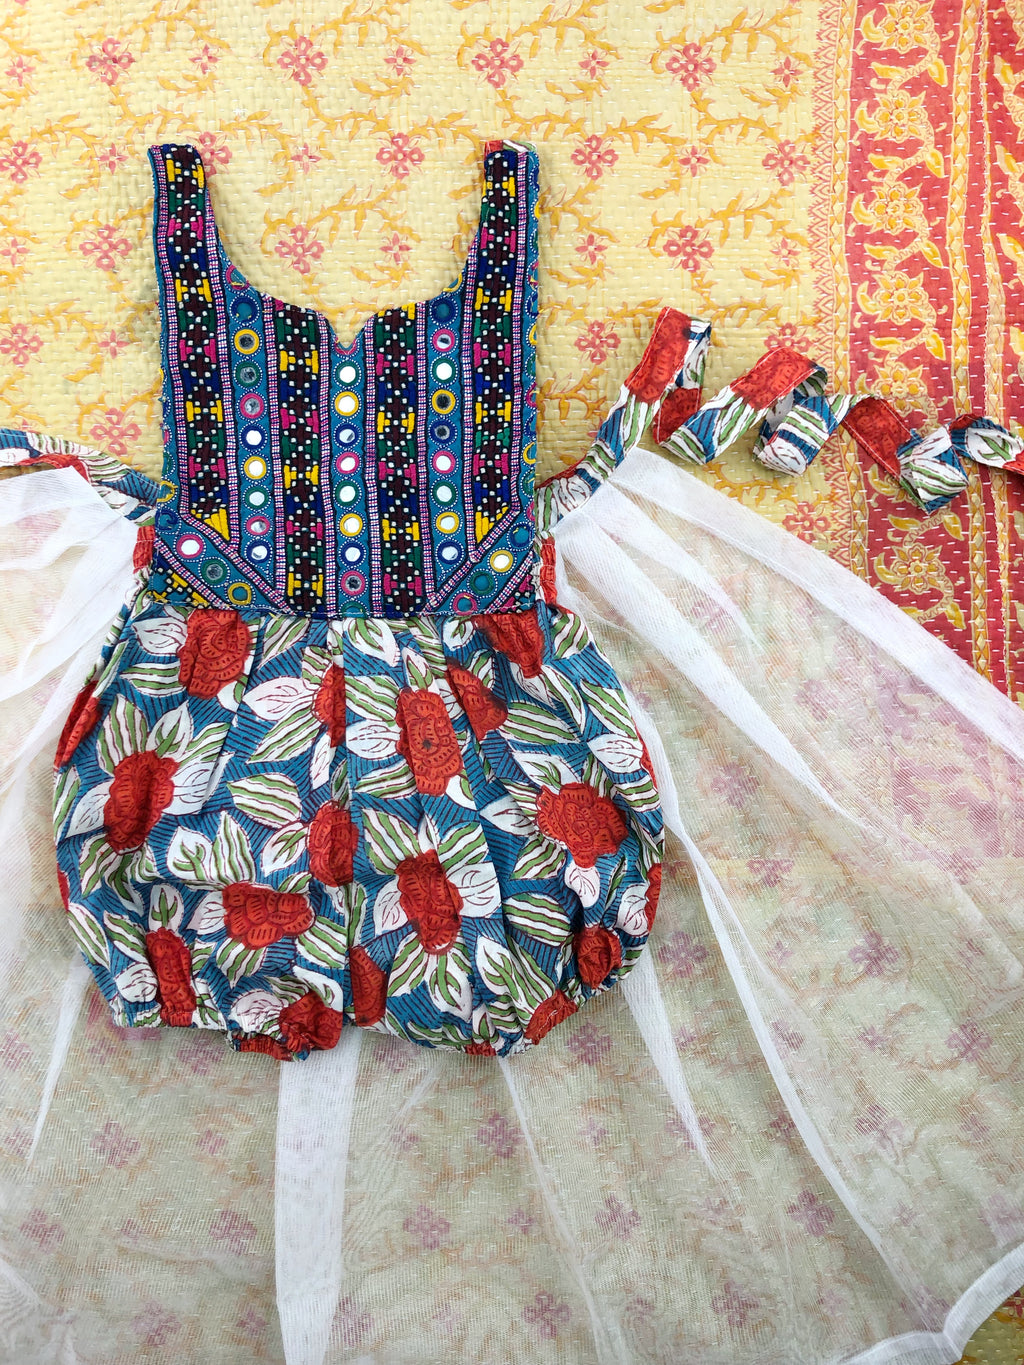 3T-Banjara romper with tulle print wrap skirt